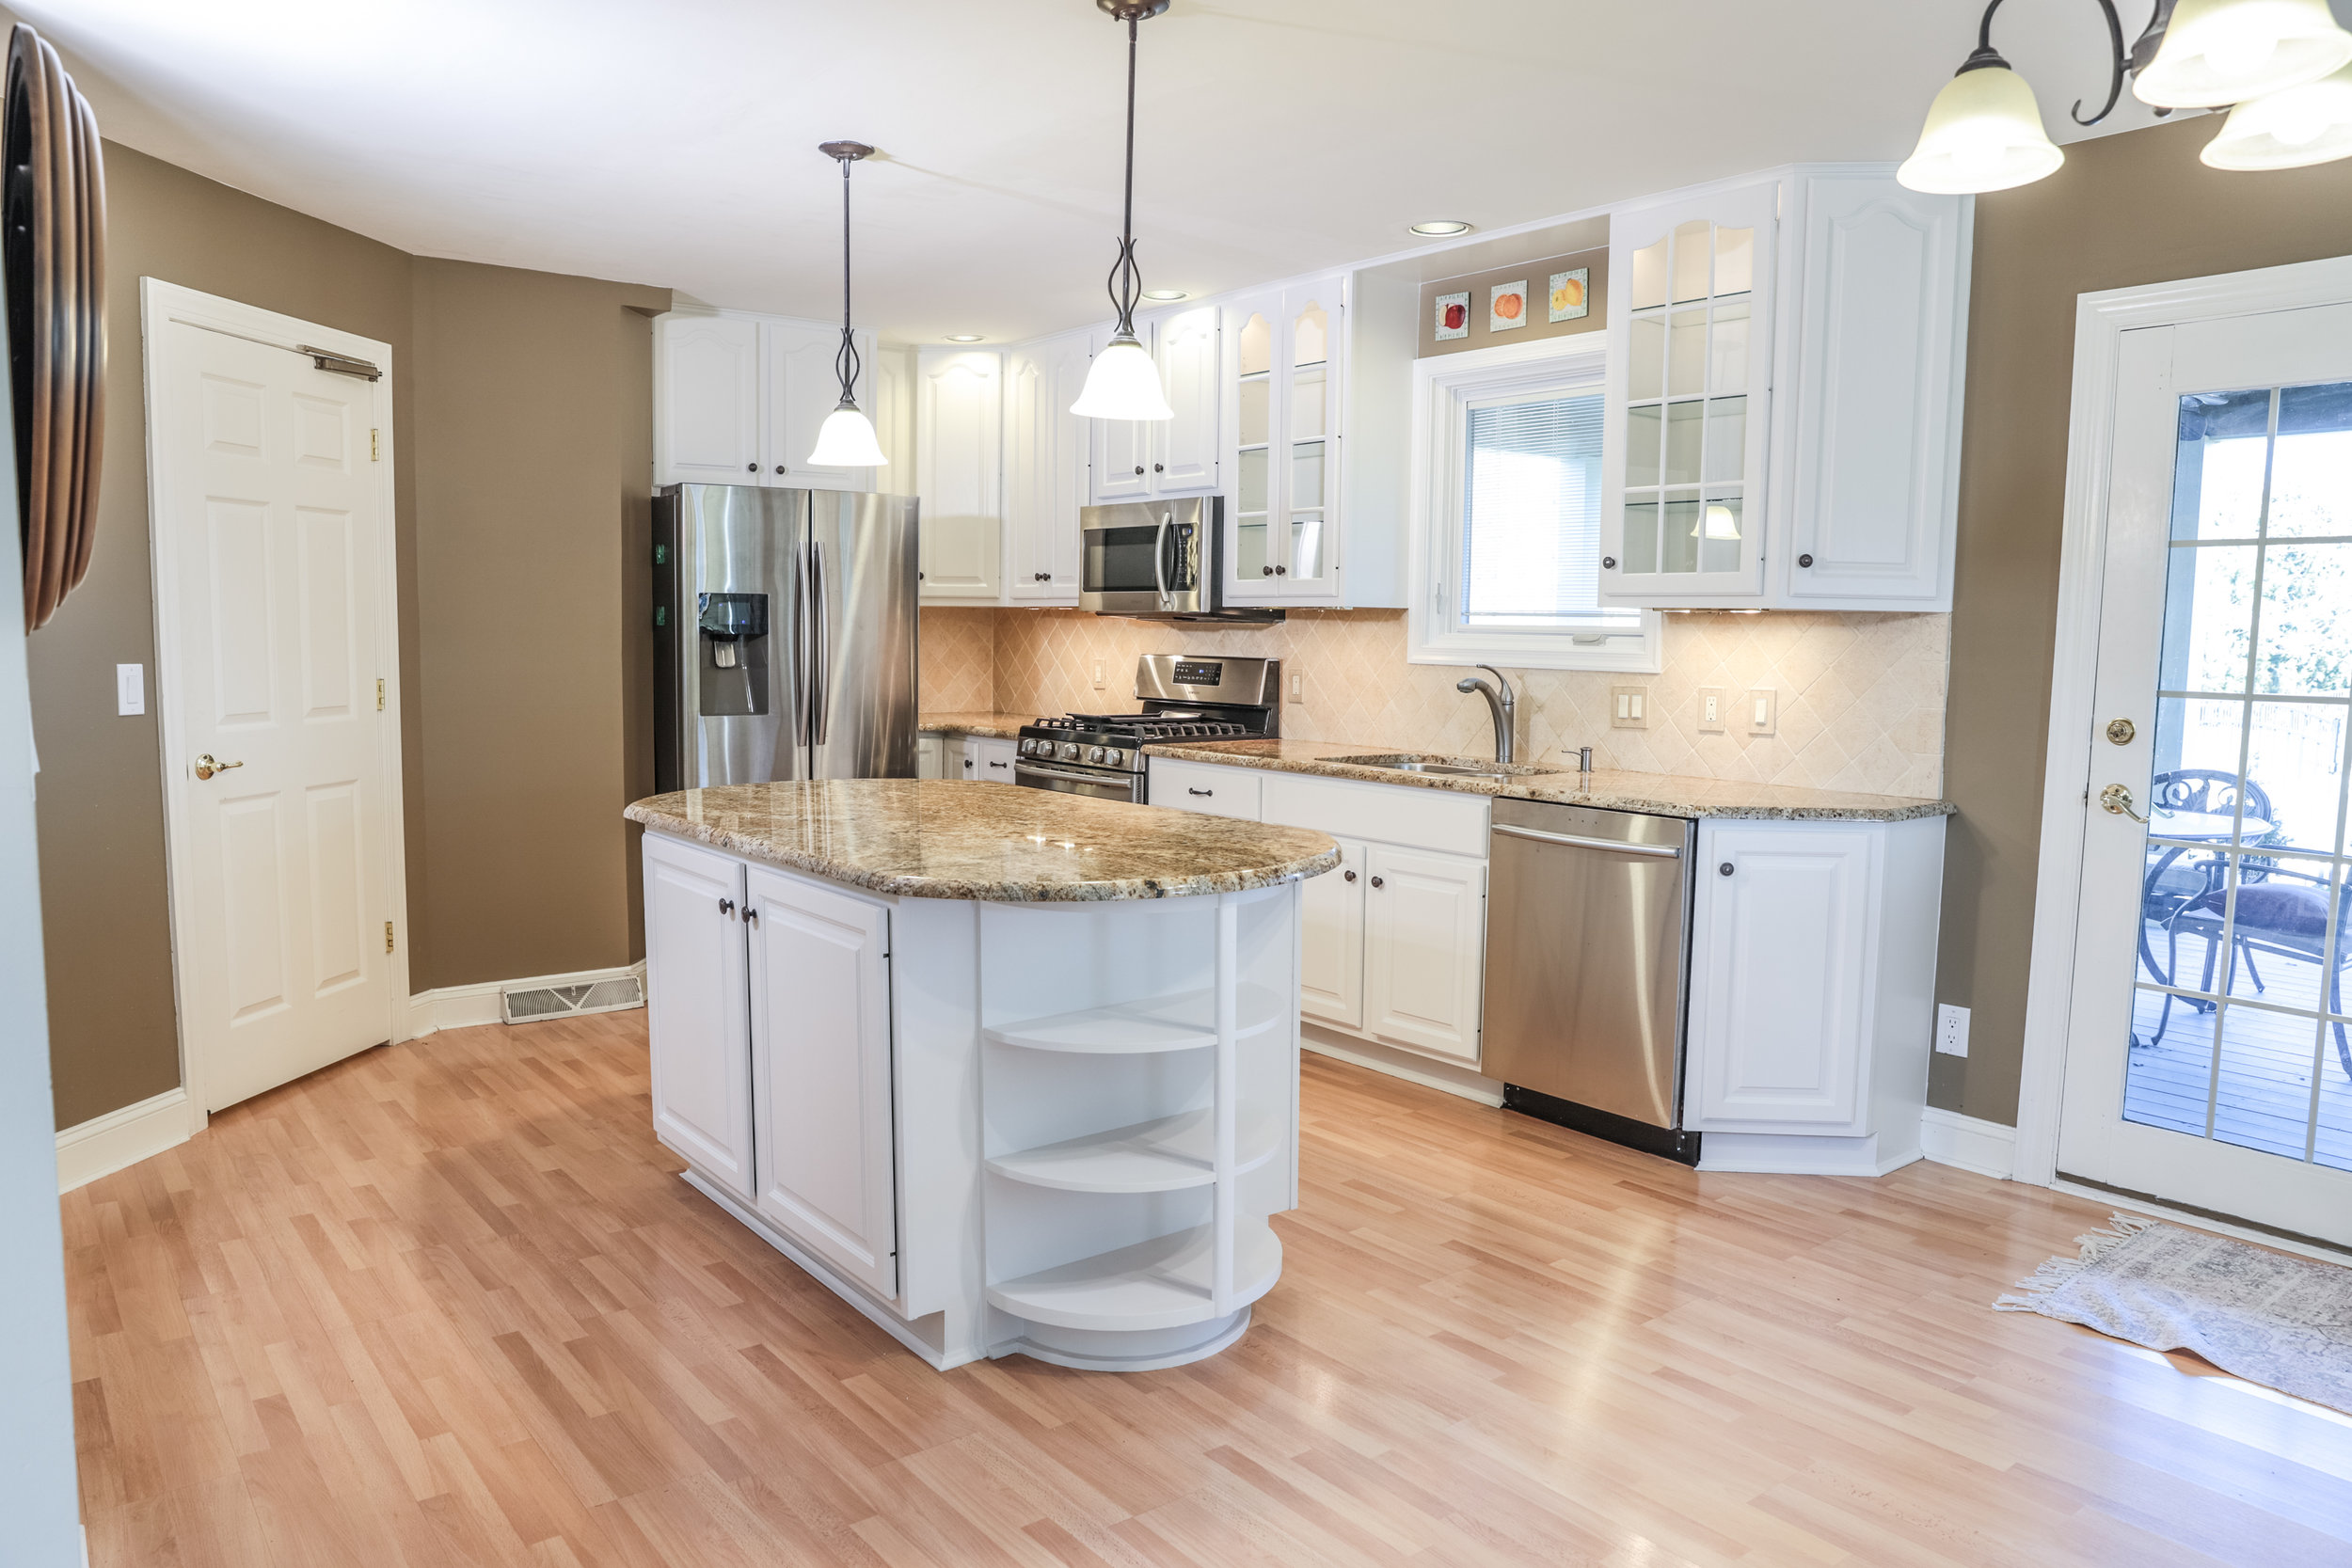 Kitchen Cabinet Coatings Professional Kitchen CabiPainting in Harrisburg Pa & York Pa